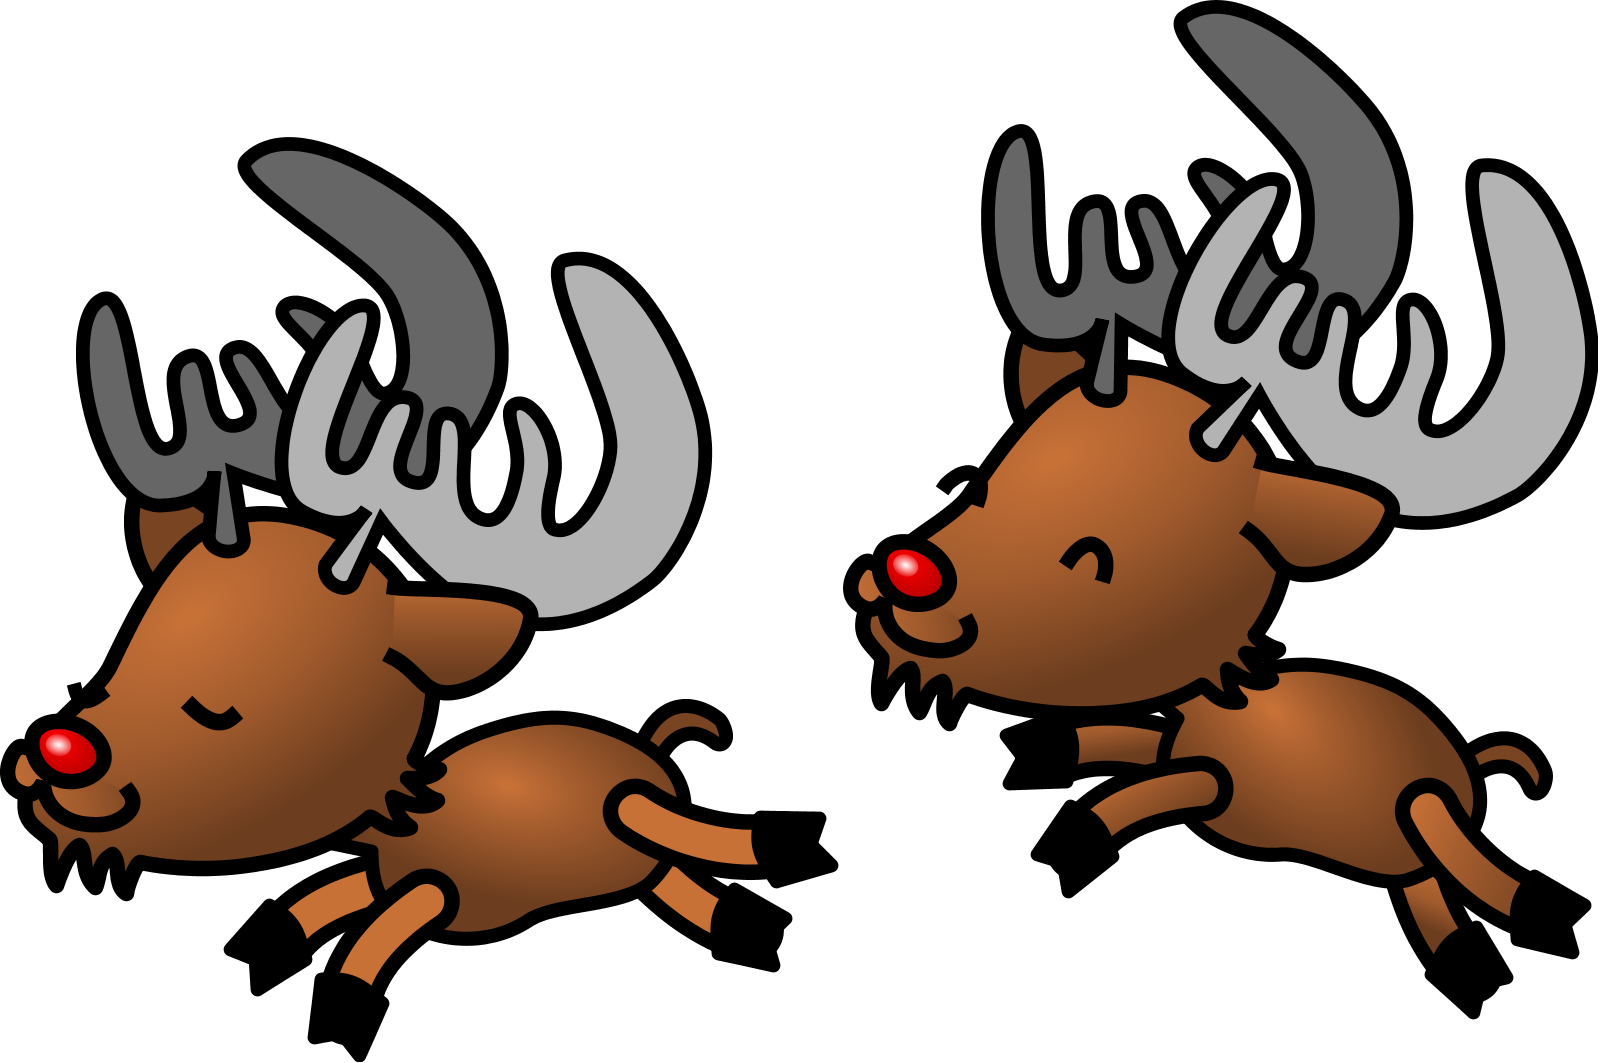 Caribou panda free images. Deer clipart walking